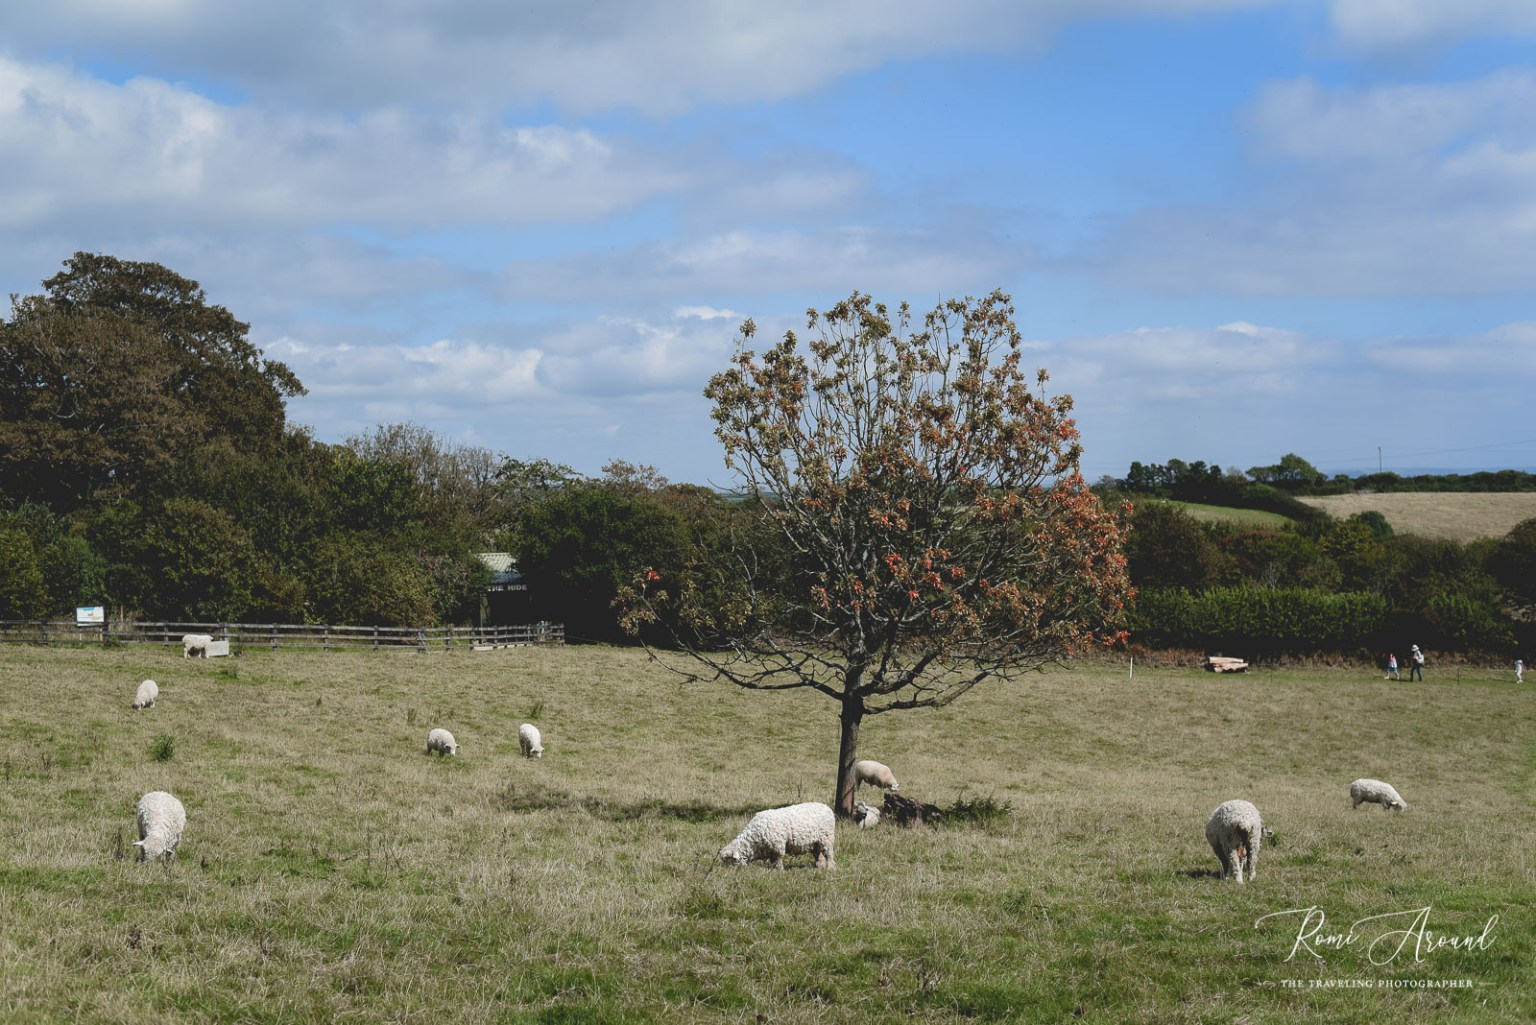 Field with sheep in the Lost Gardens of Heligan